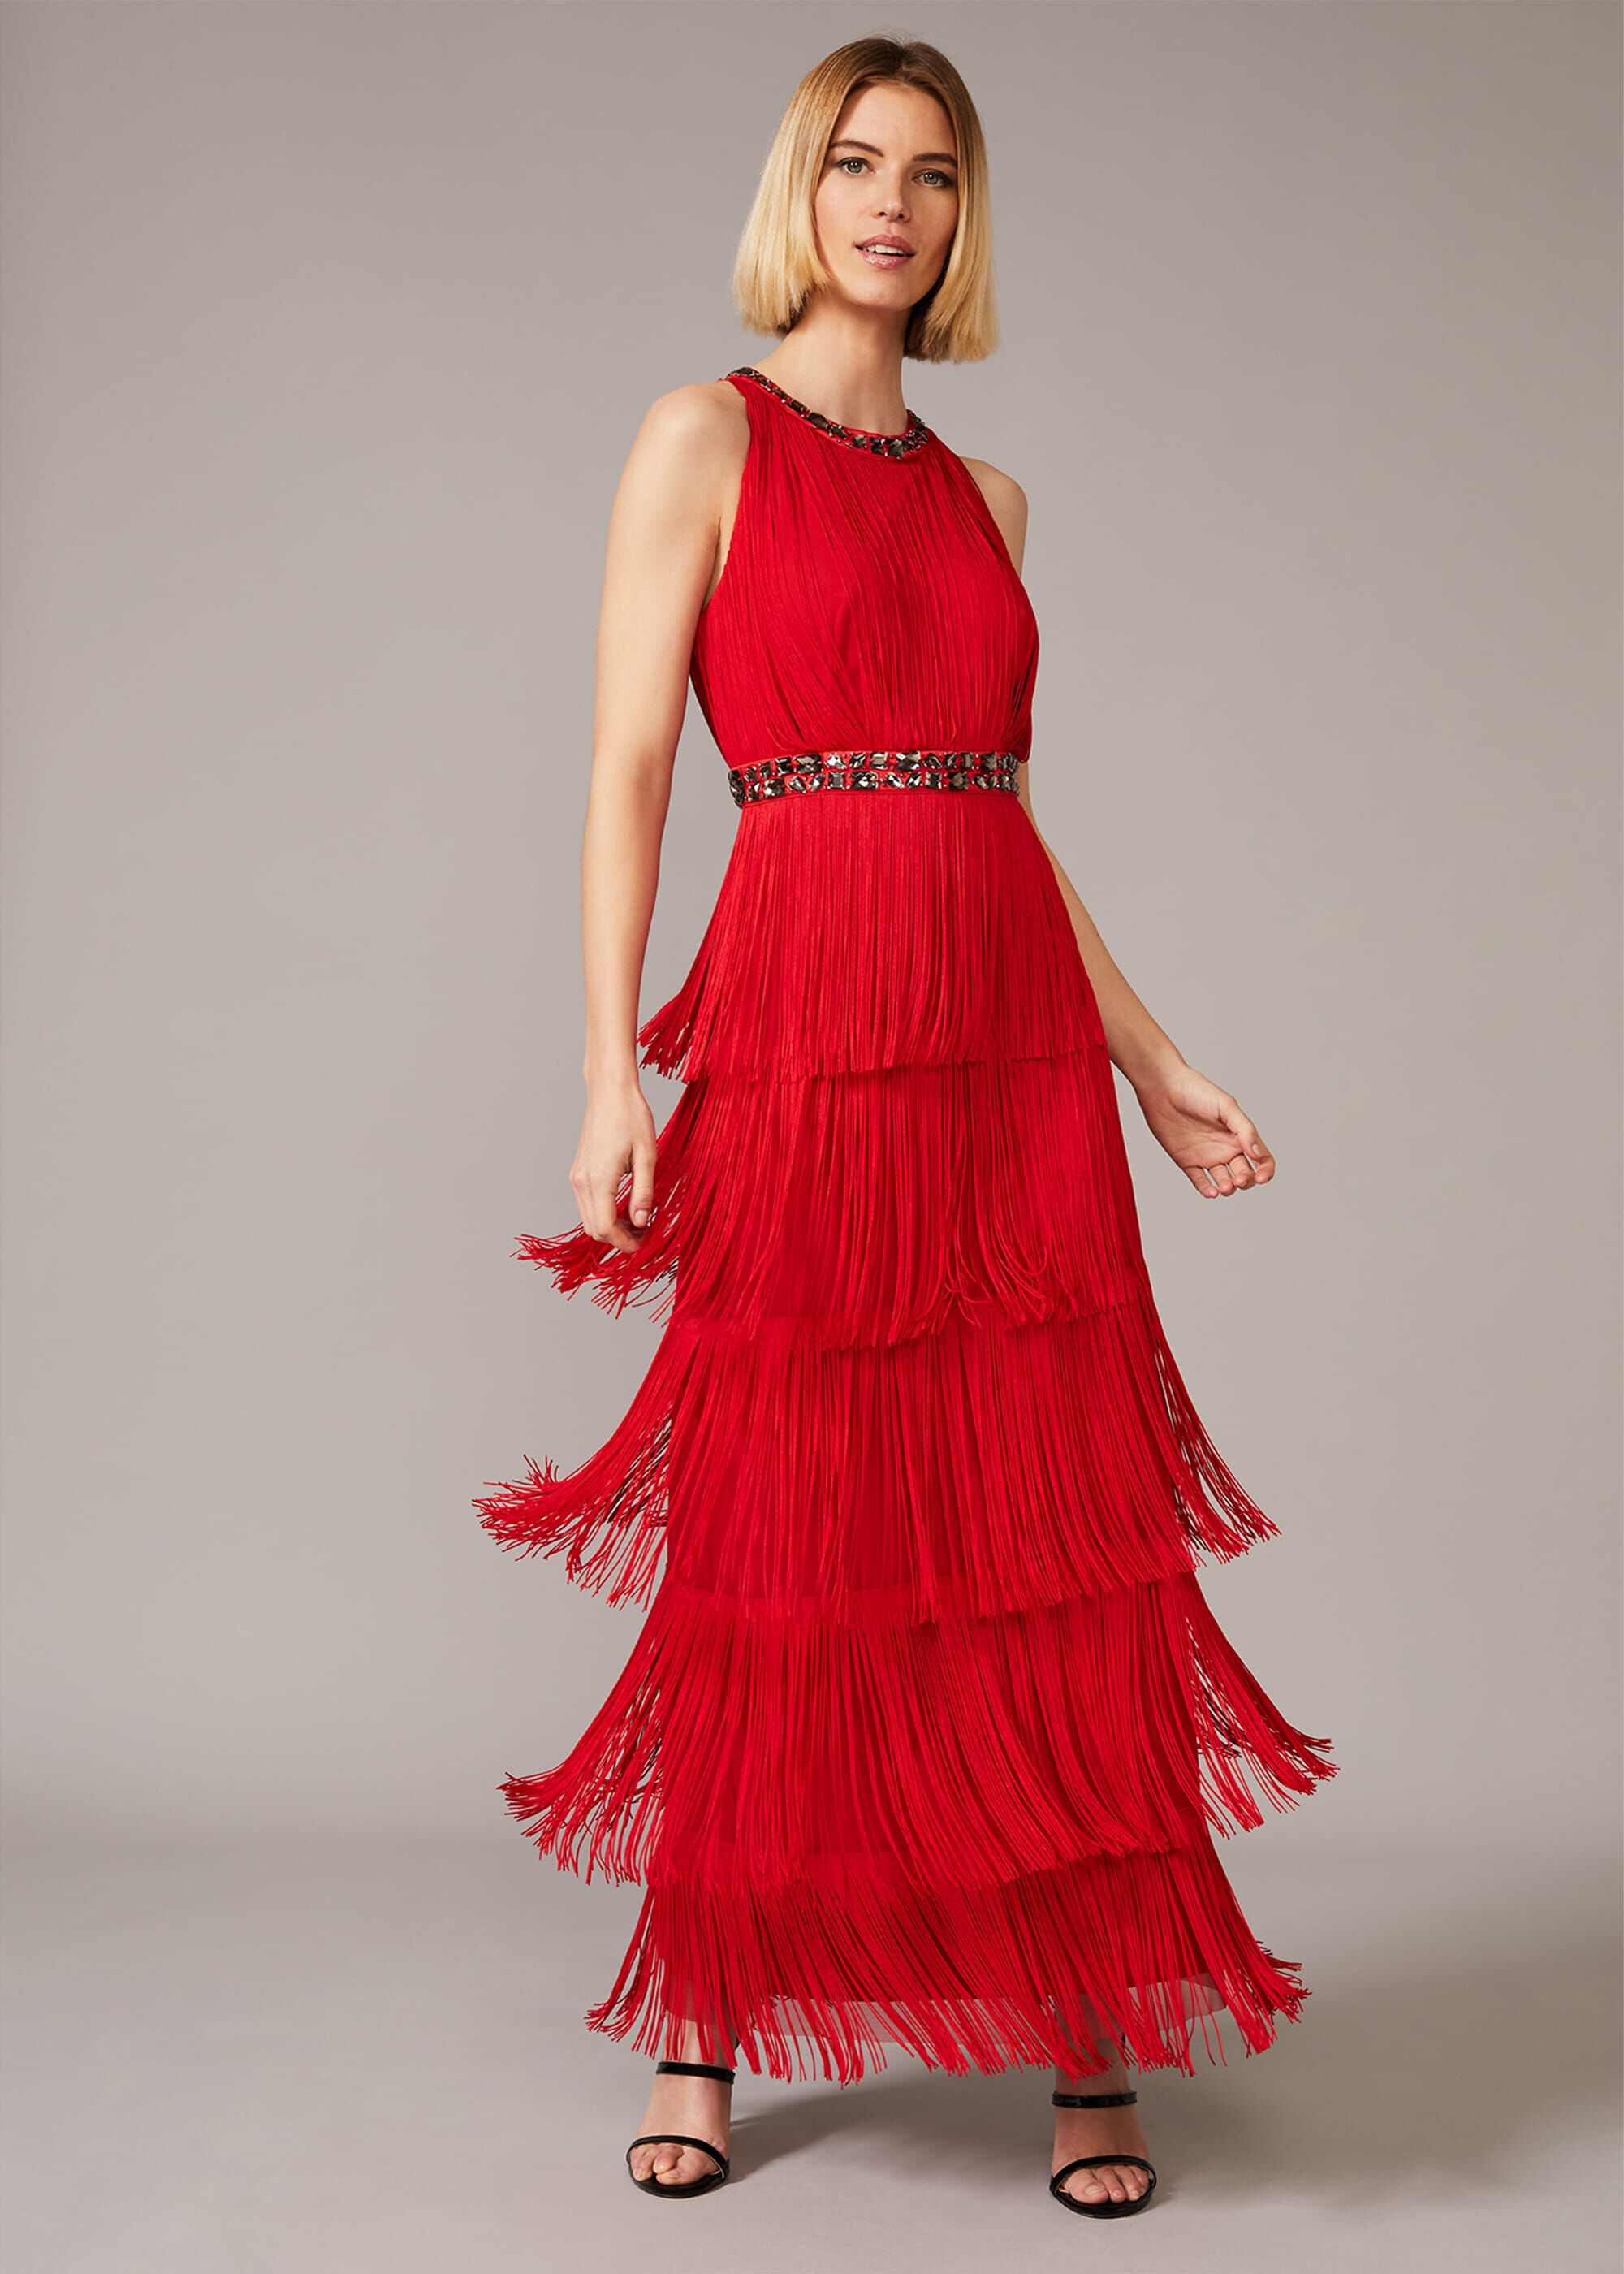 Phase Eight Albertina Fringe Maxi Dress, Red, Maxi, Occasion Dress